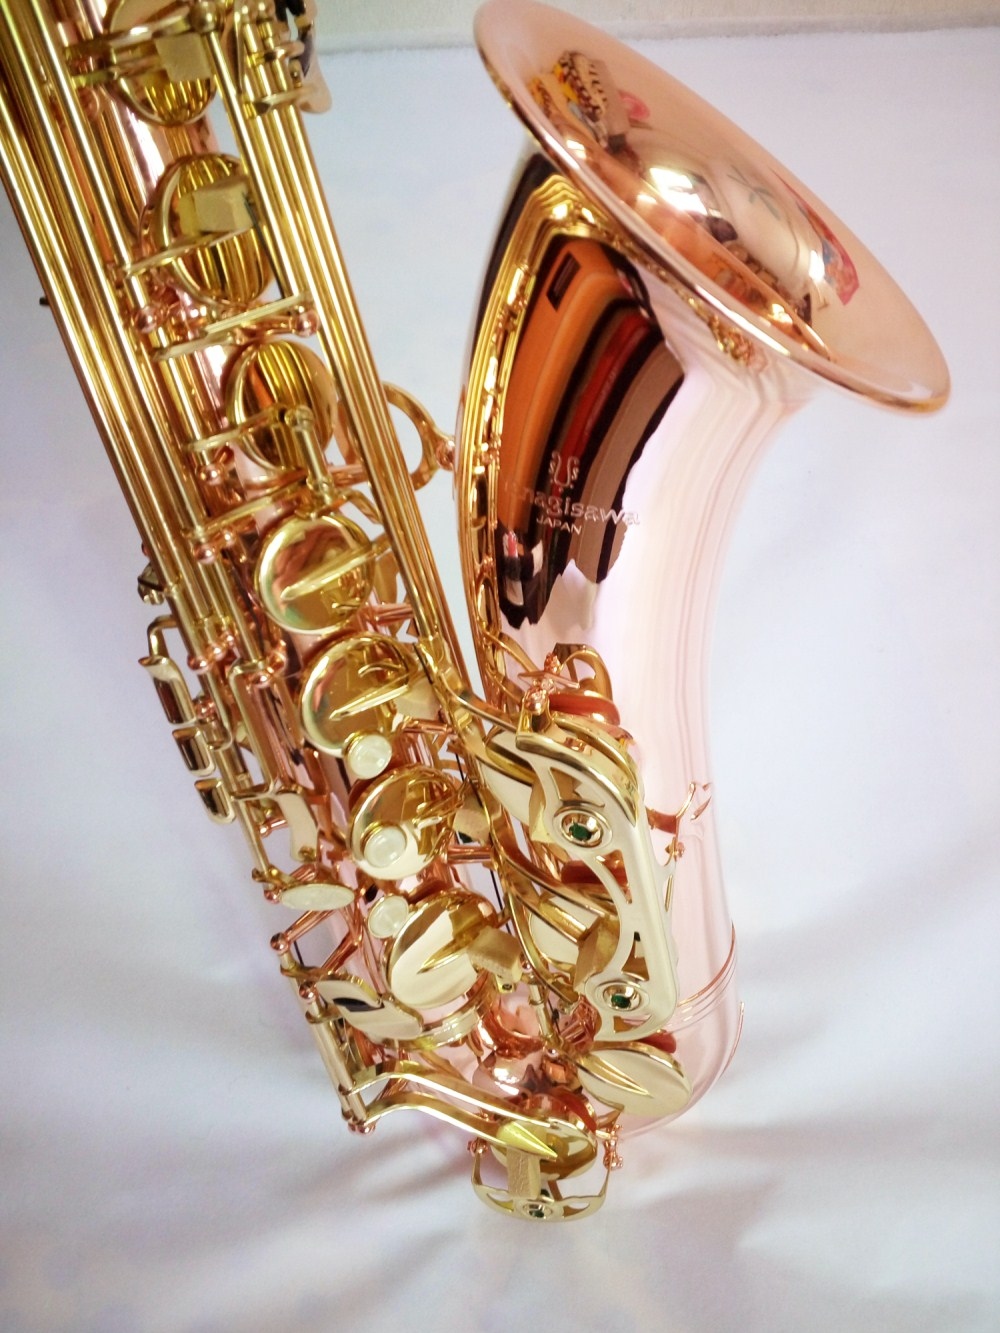 New Yanagisawa Tenor Saxophone T901 High Quality Sax B flat tenor saxophone playing professionally paragraph Music Saxophone 2018 japan yanagisawa new tenor saxophone t 992 b flat tenor saxophone gold key yanagisawa sax with accessories professionally